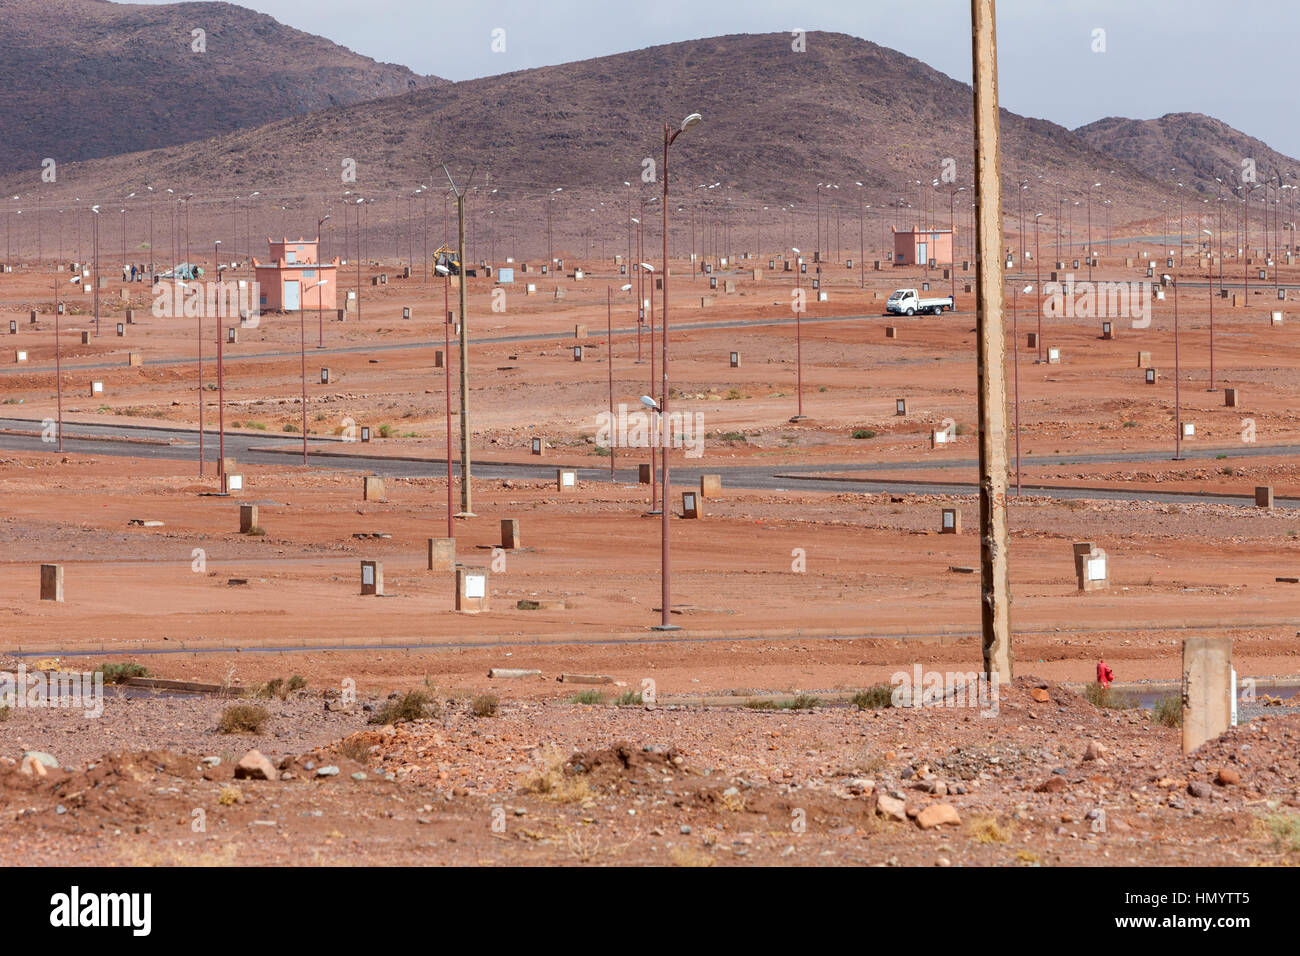 Ouarzazate, Morocco.  Planning for Future Urban Development. - Stock Image